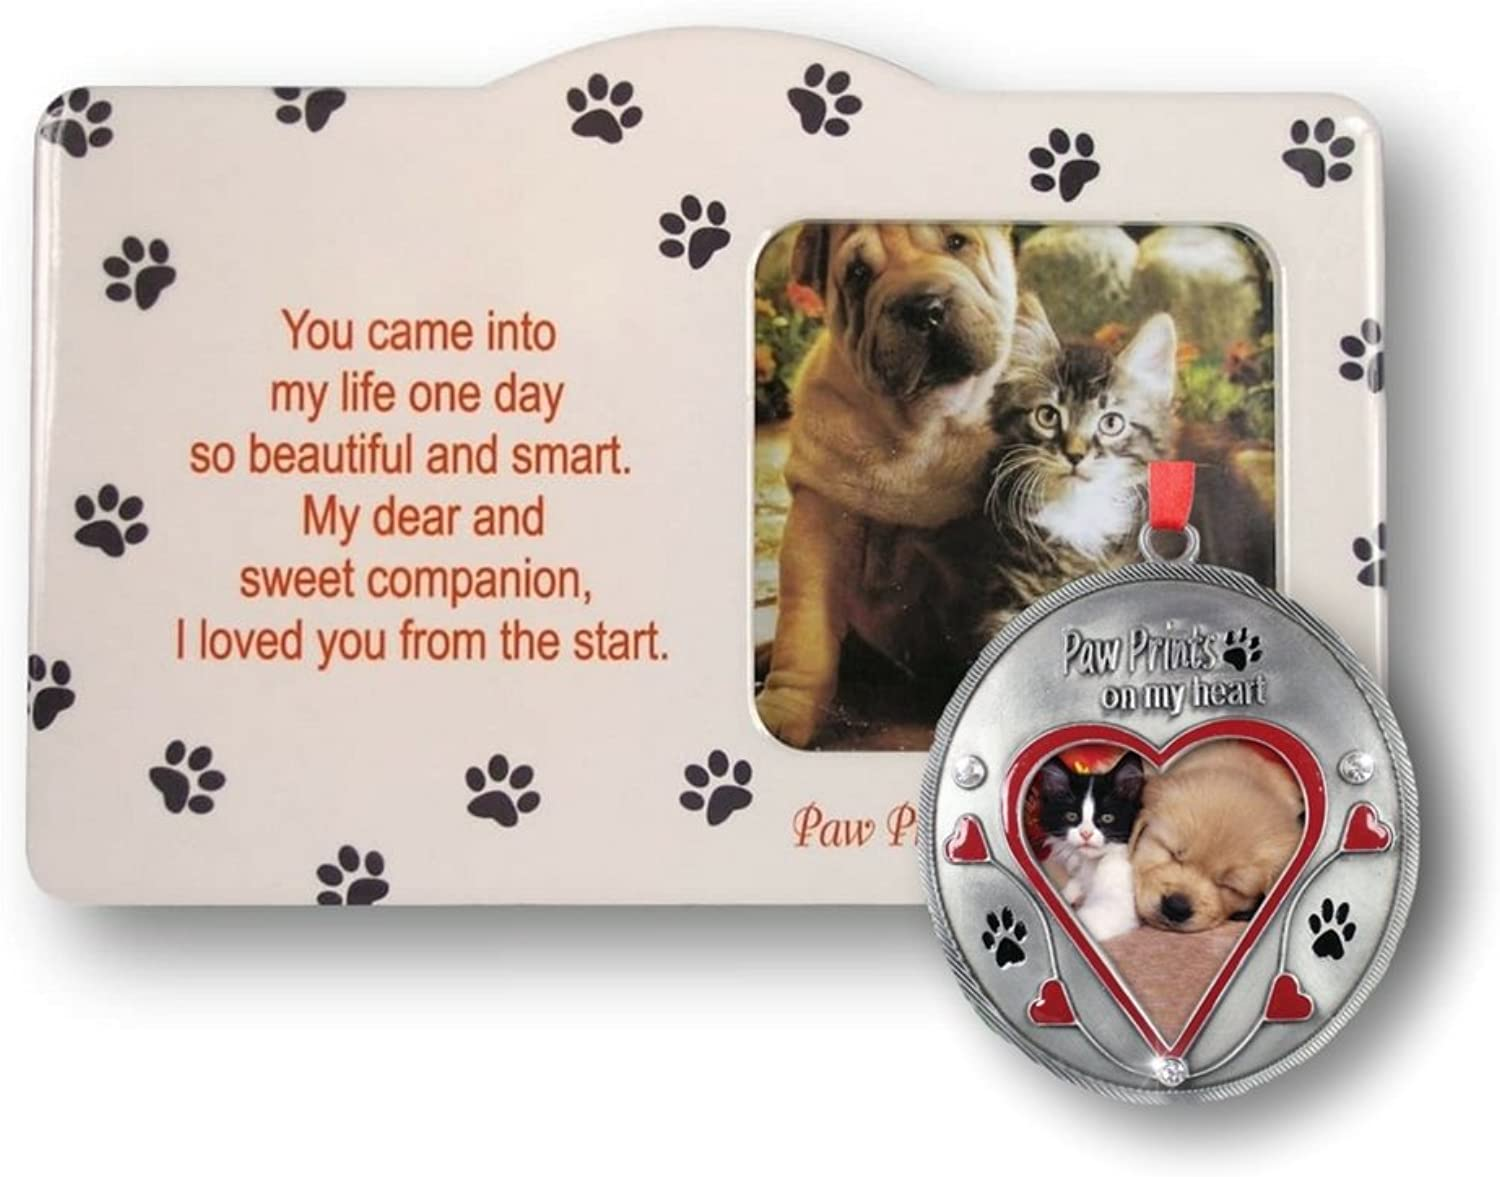 Pet Keepsake Picture Frame and Ornament Set  Paw Prints on My Heart Frame  Loving Memory Dog or Cat Memorial Christmas Ornament